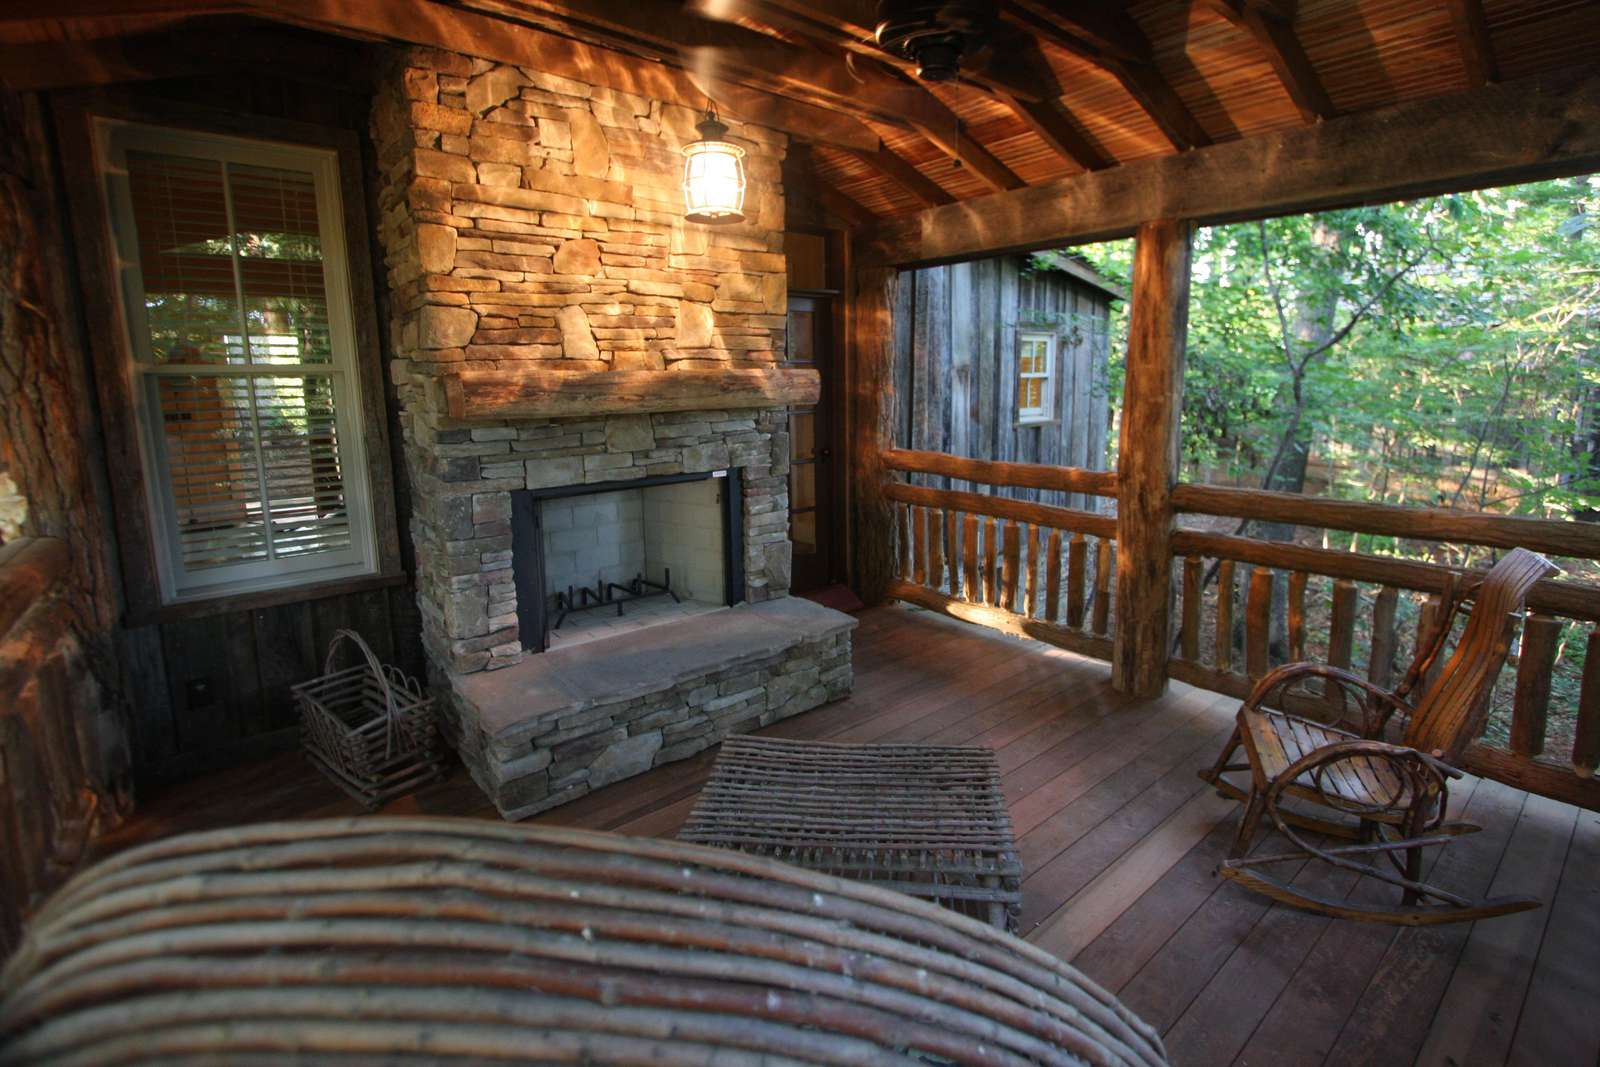 Secluded back porch with fireplace